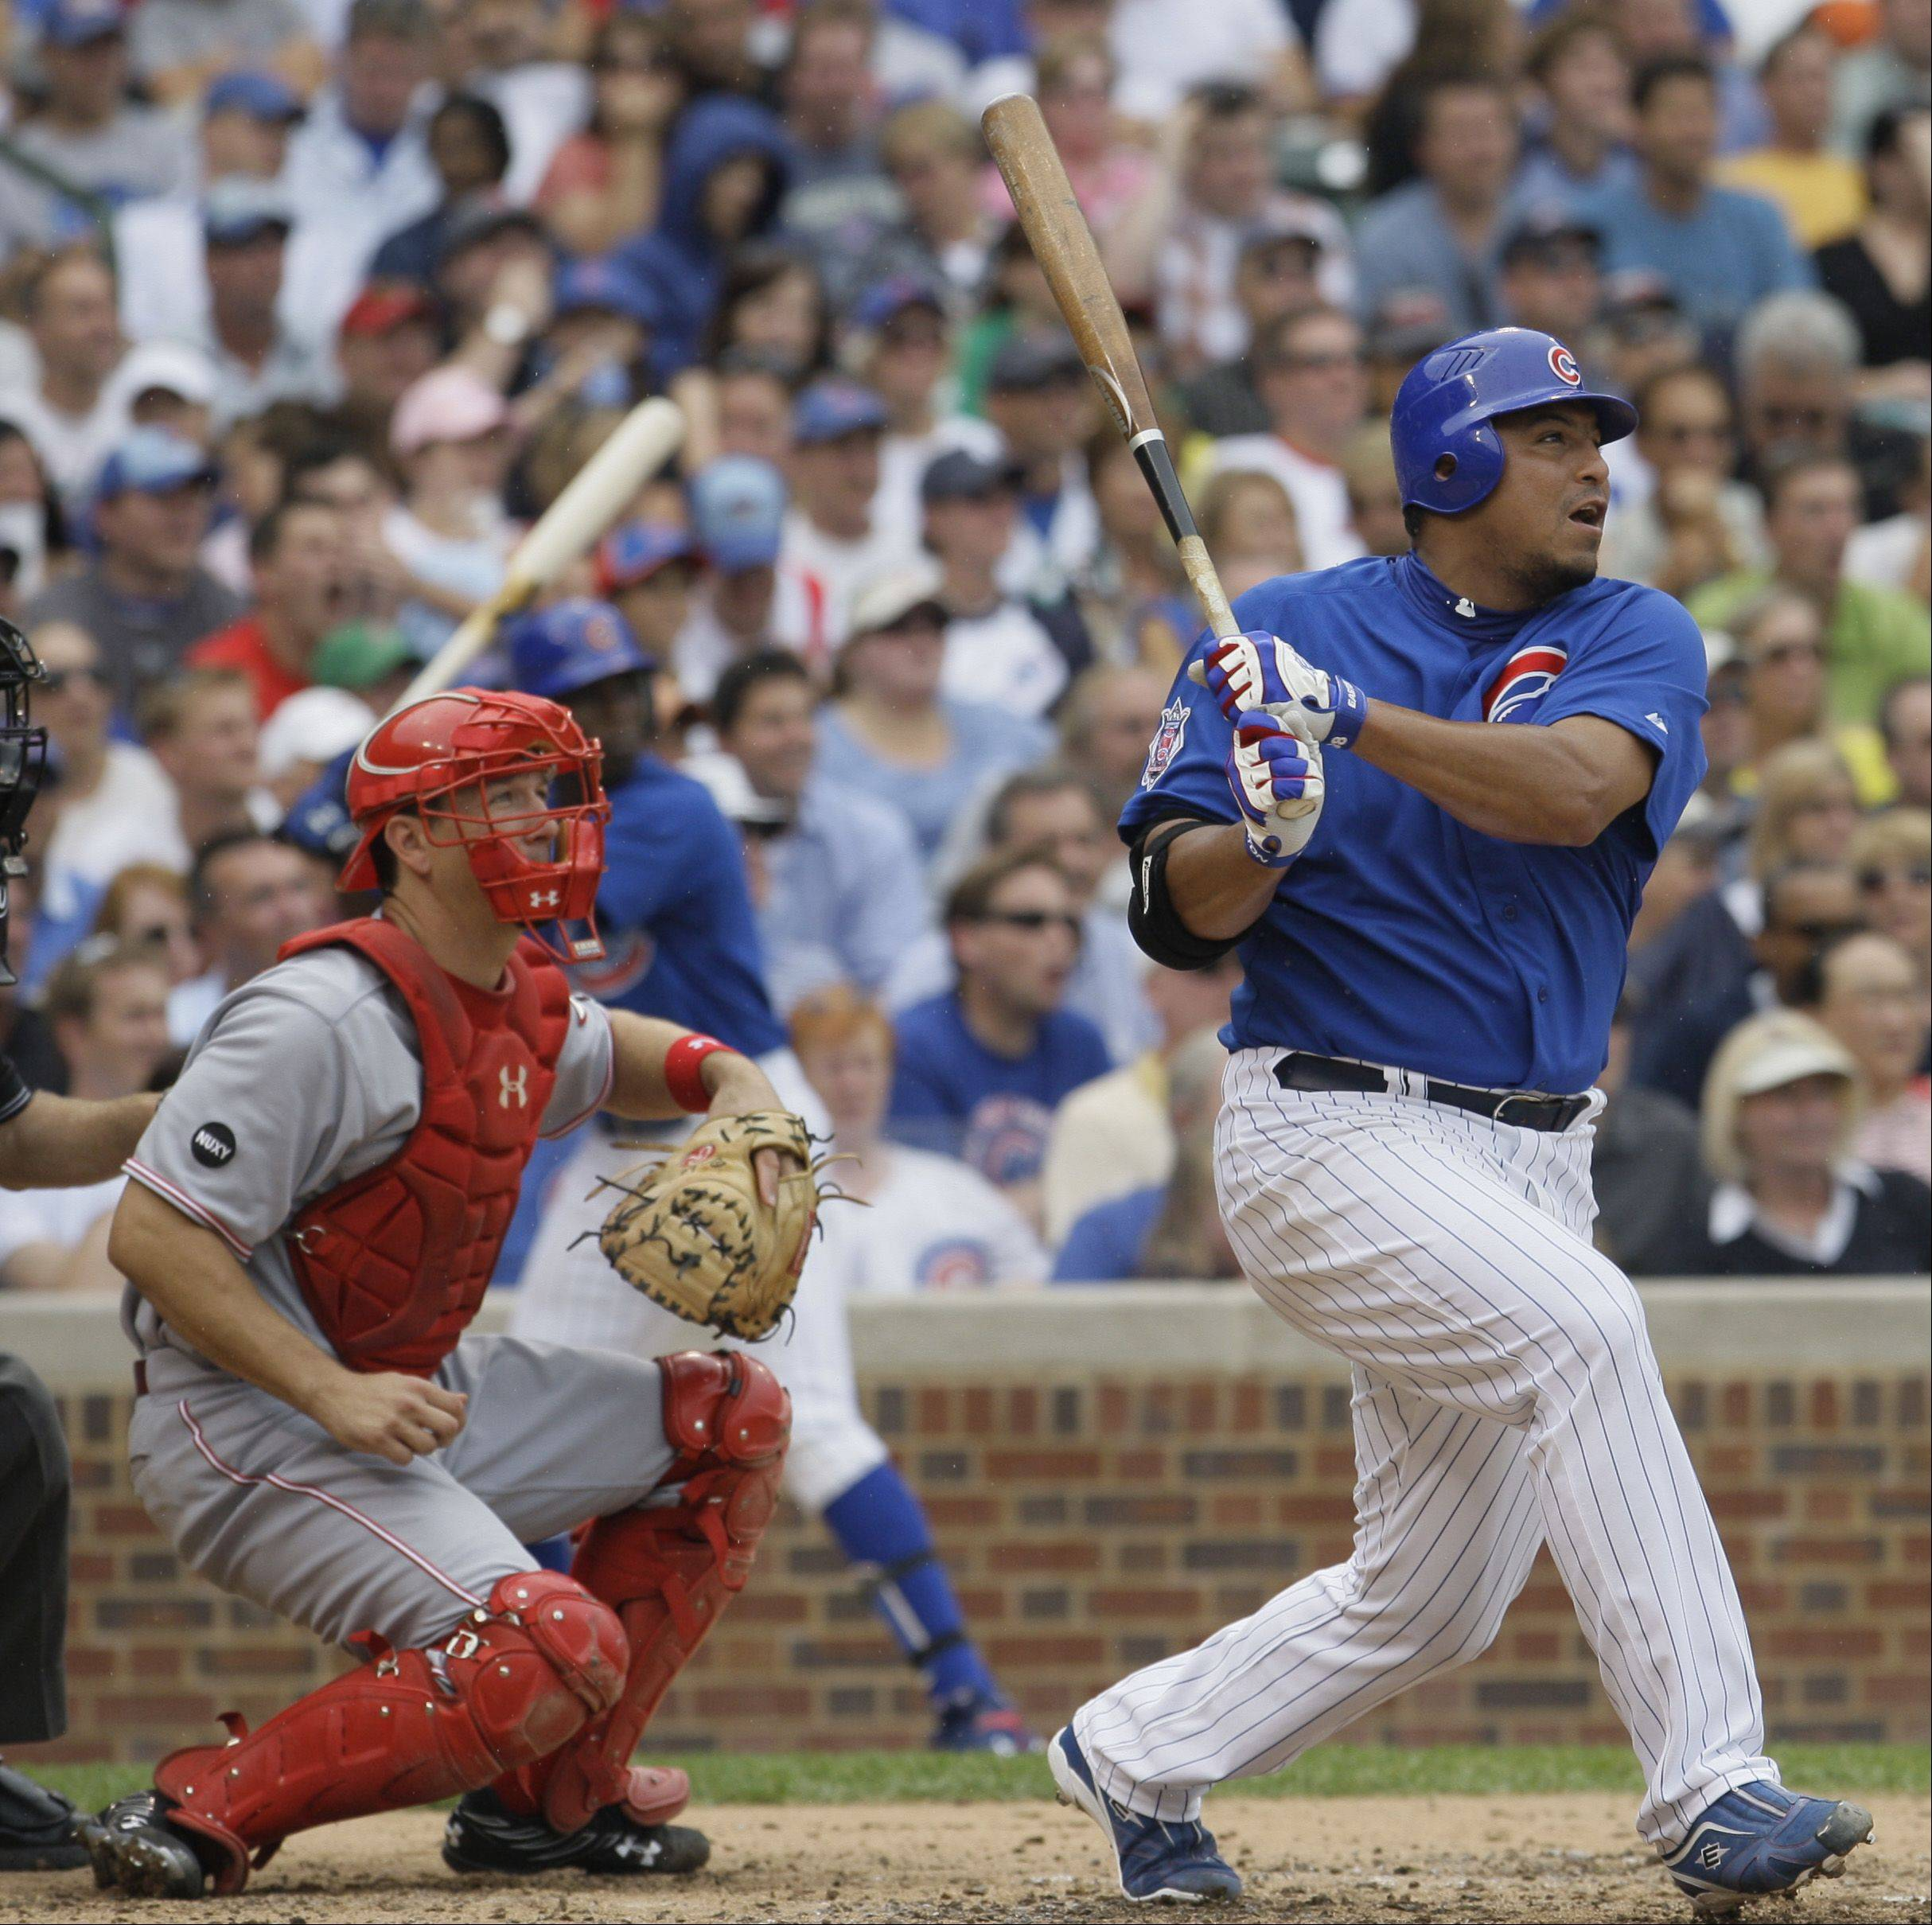 Chicago Cubs' Carlos Zambrano and Cincinnati Reds catcher Paul Bako watch Zambrano's solo home run during the third inning of a baseball game Thursday, Aug. 21, 2008, in Chicago. (AP Photo/M. Spencer Green)